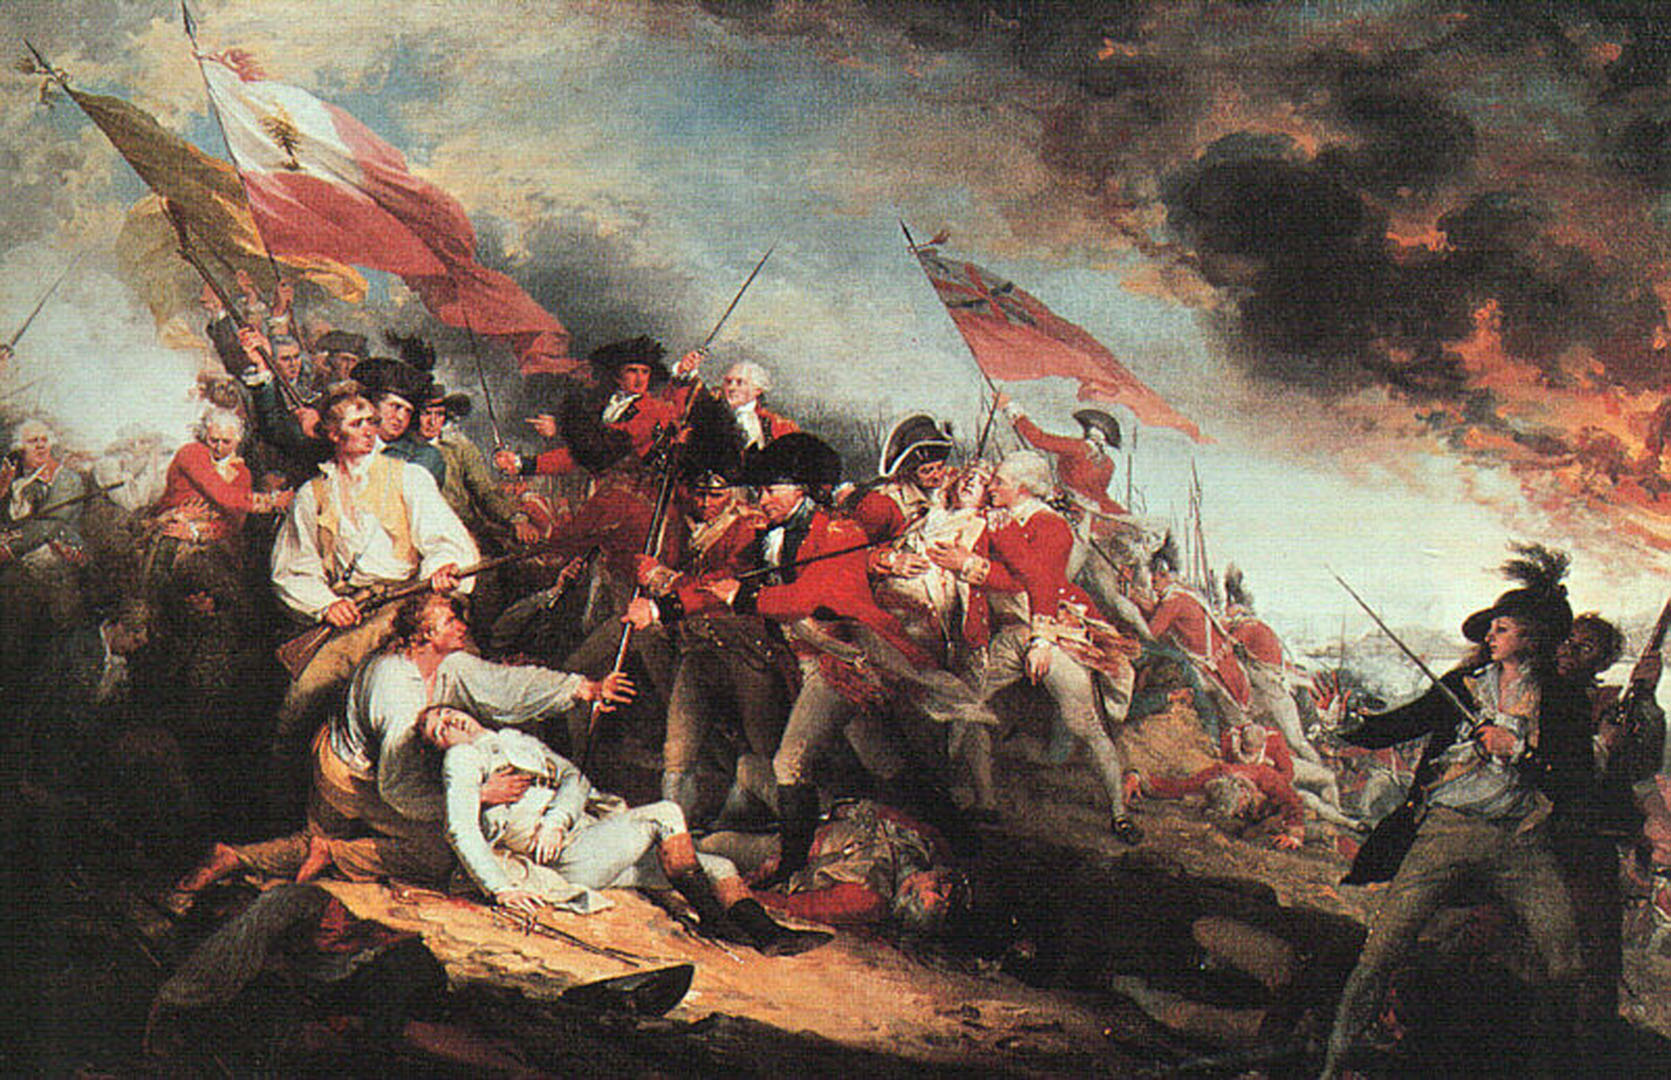 """The Death of General Warren at the Battle of Bunker's Hill,"" by John Trumbull. Note the Pine Tree Flag flying at the forefront. Trumbull witnessed the battle."